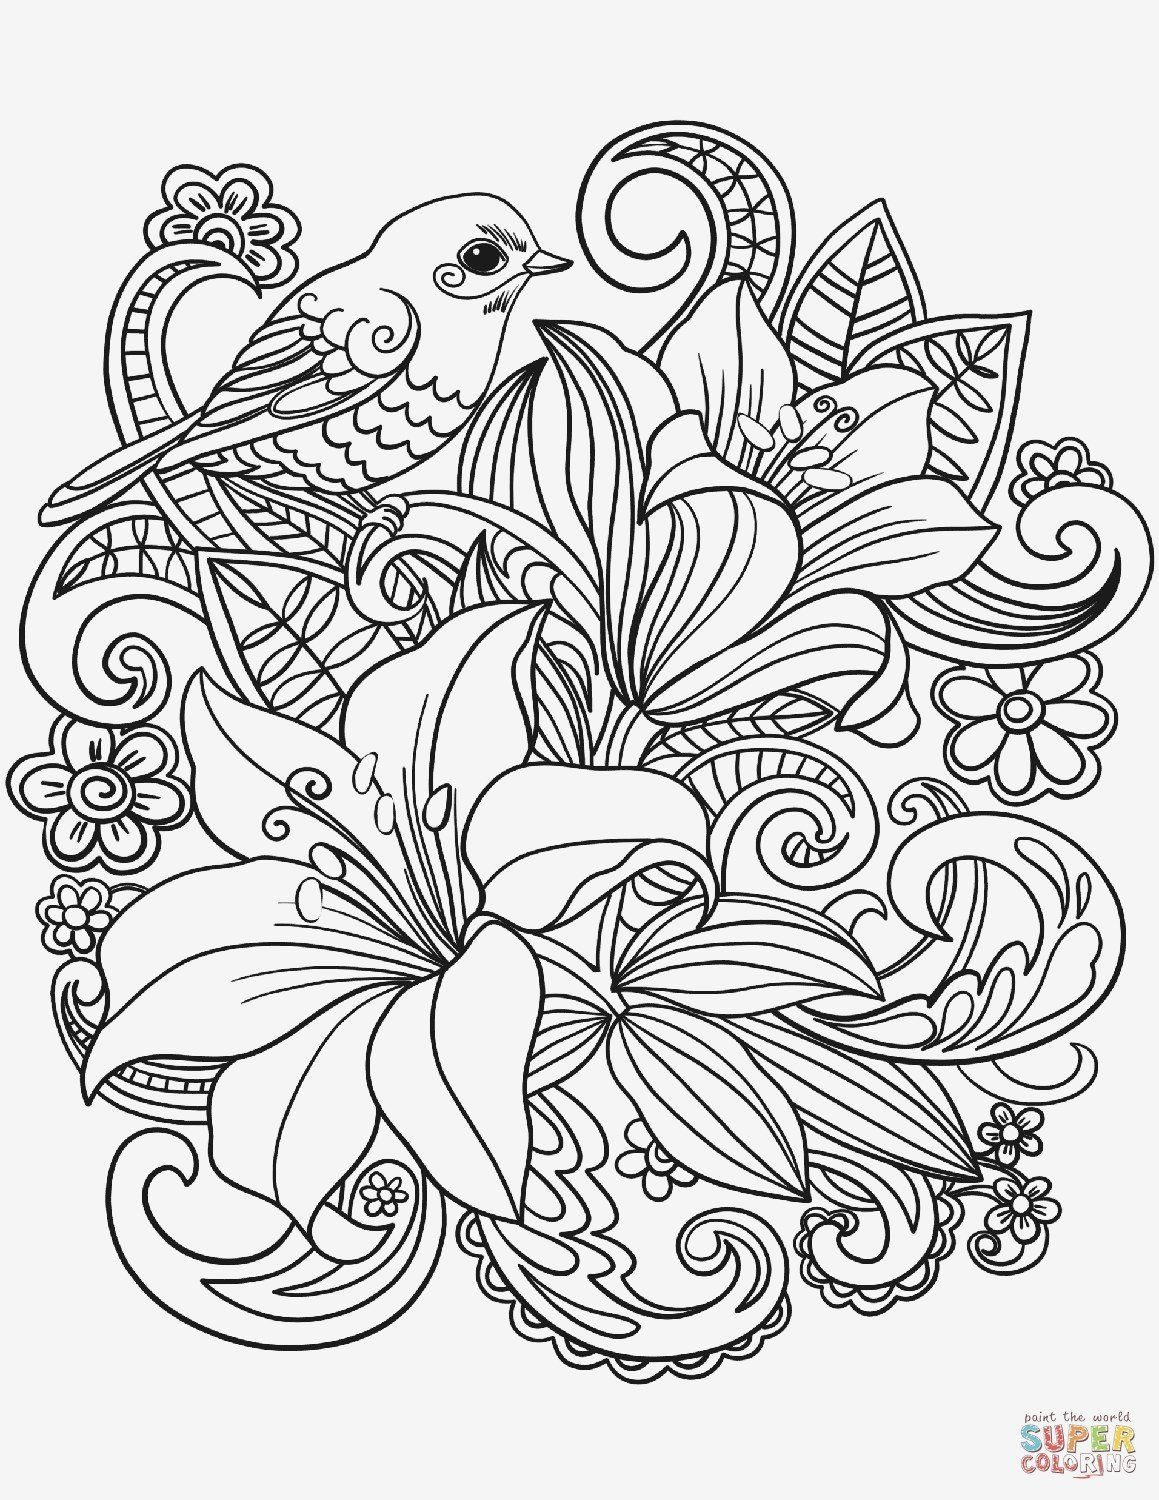 Printable Flower Coloring Pages Unique 25 Free Printable Skull Coloring  Pages Col… in 2020 | Printable flower coloring pages, Mandala coloring pages,  Flower coloring sheets